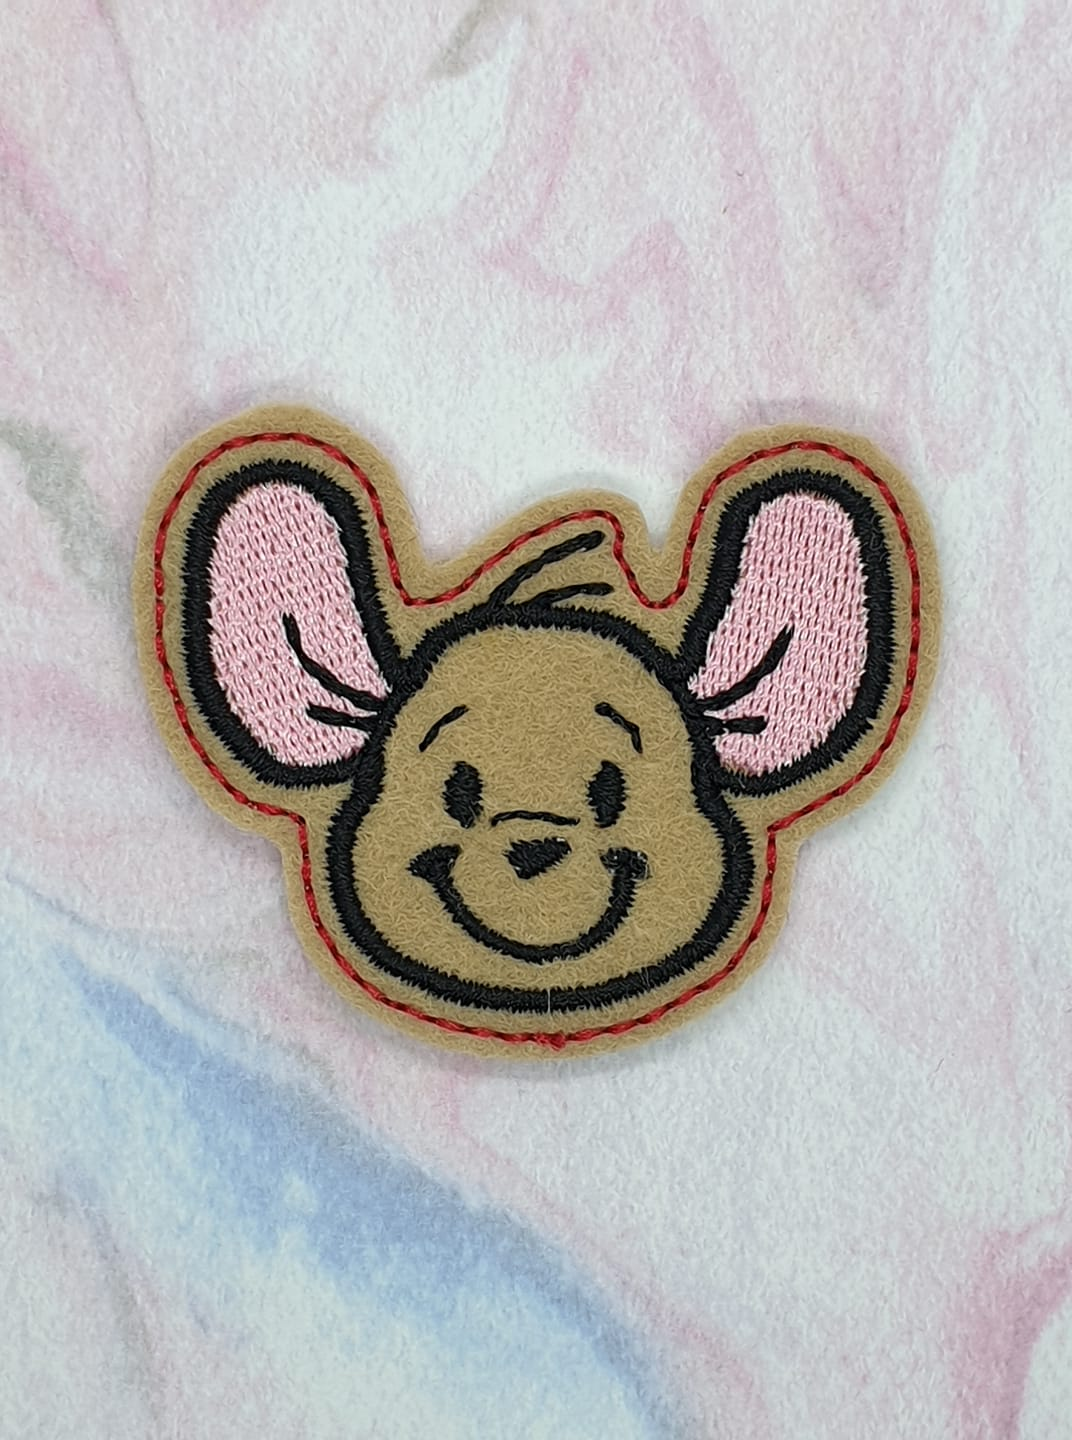 Smiling Roo Feltie Embroidery Design